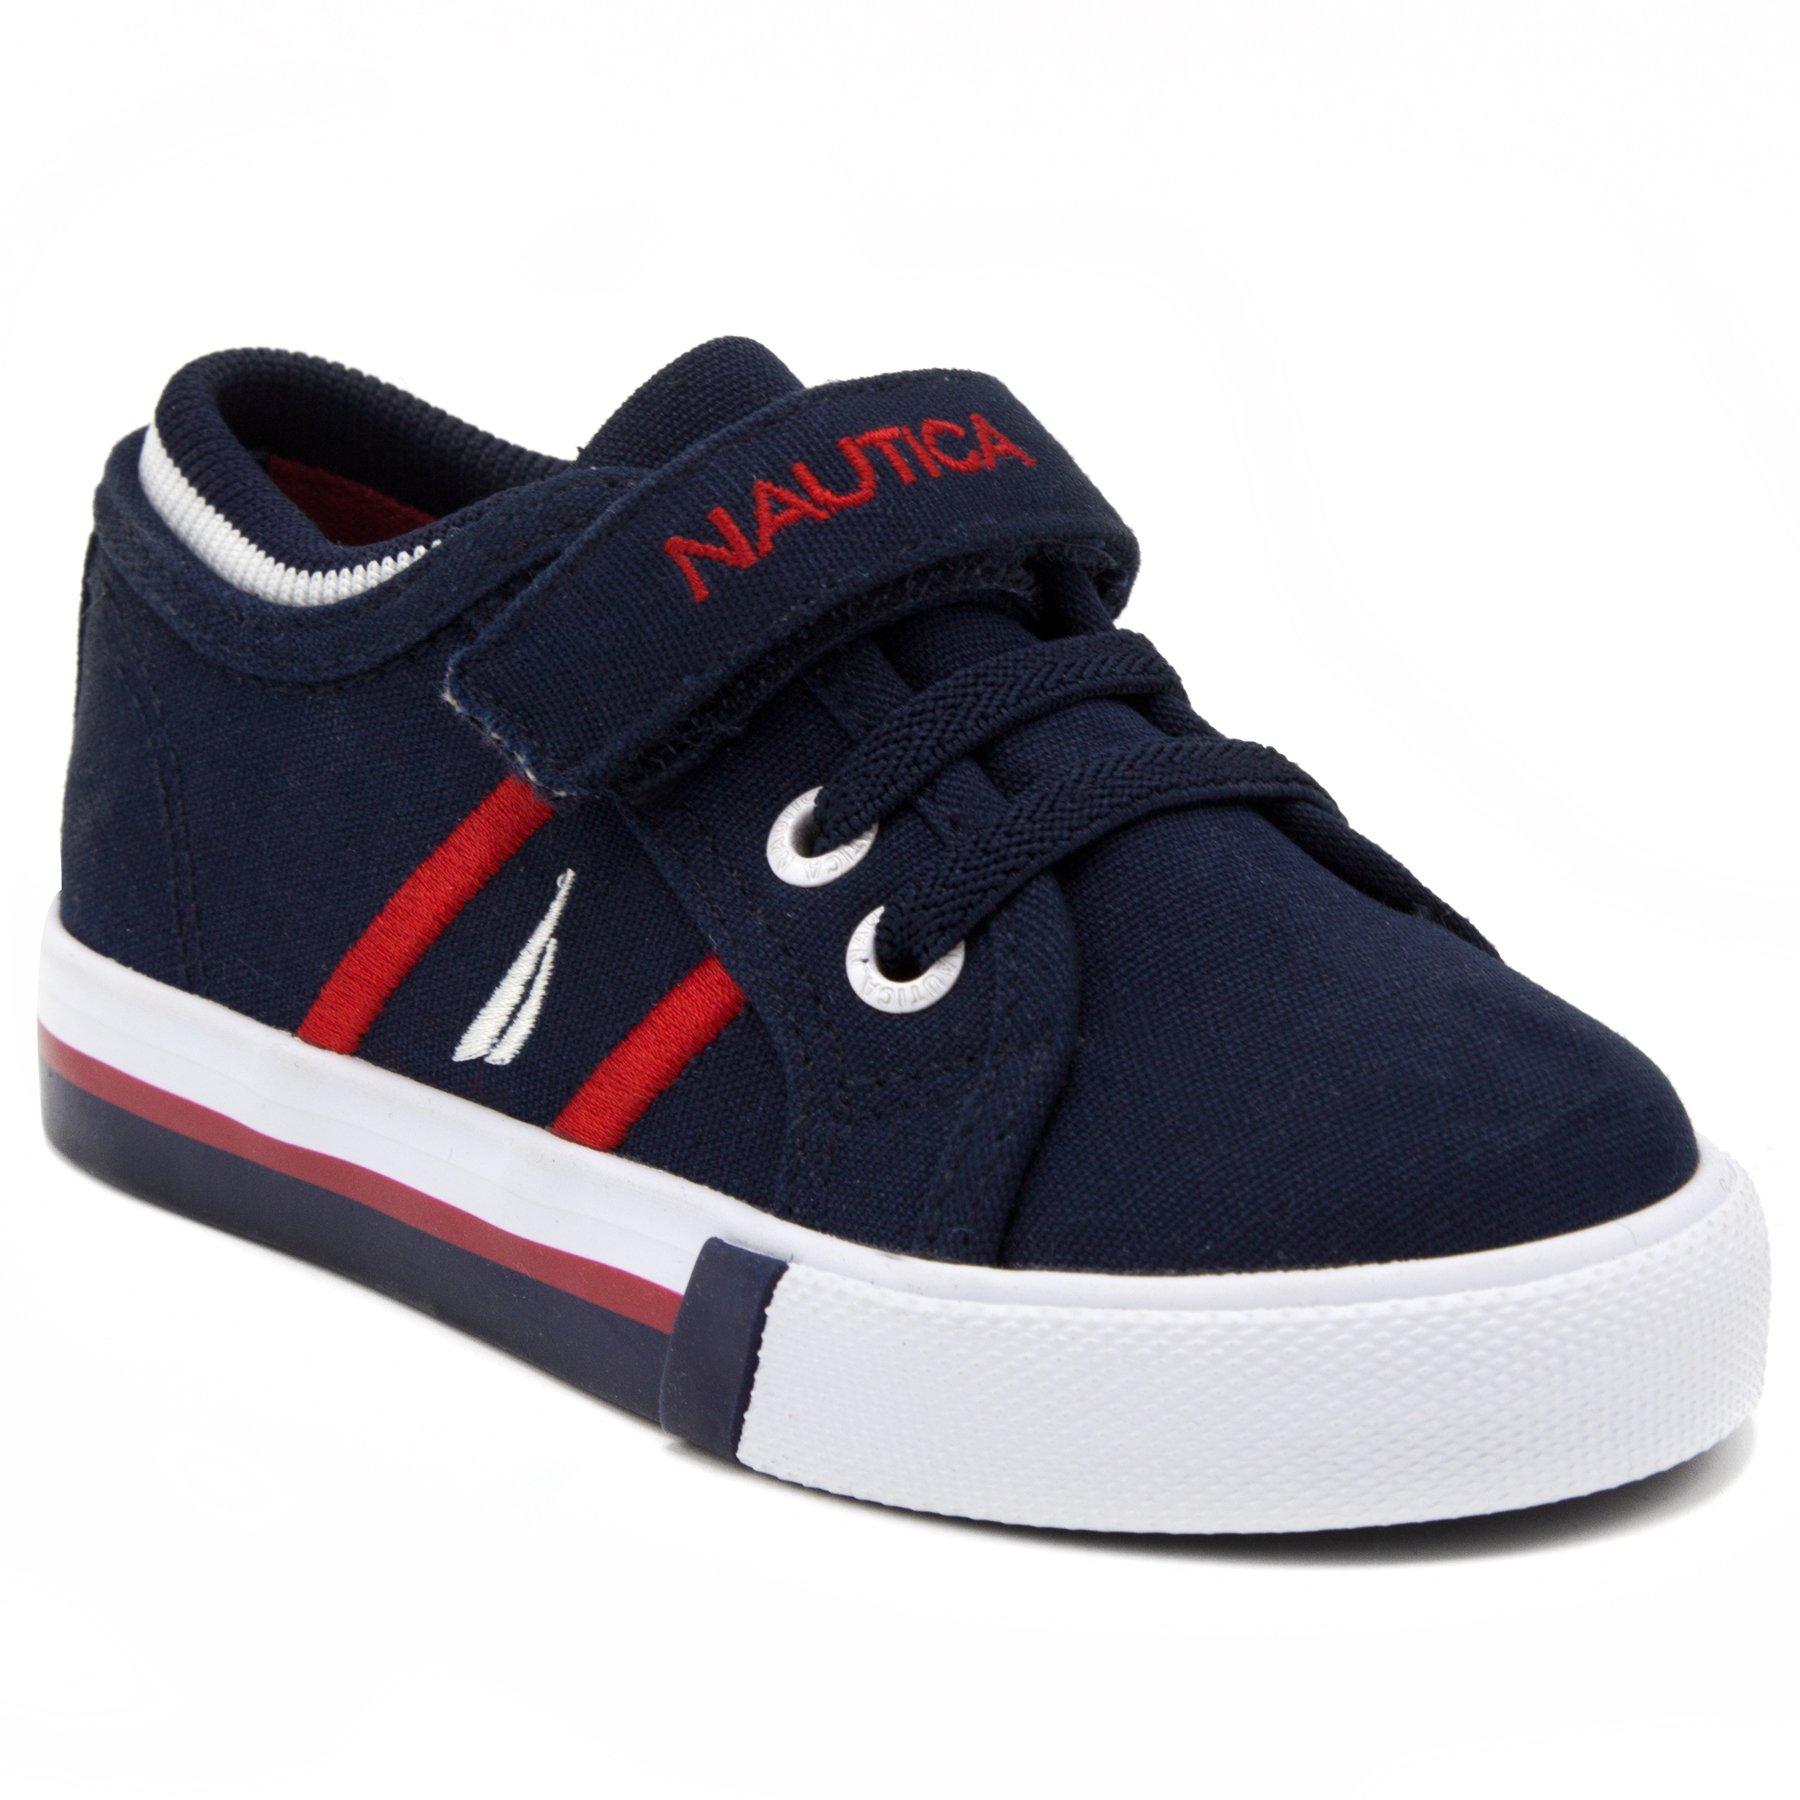 Nautica Toddler Edge View Canvas Sneakers Lace-up and Velcro Casual Shoes-Navy-5